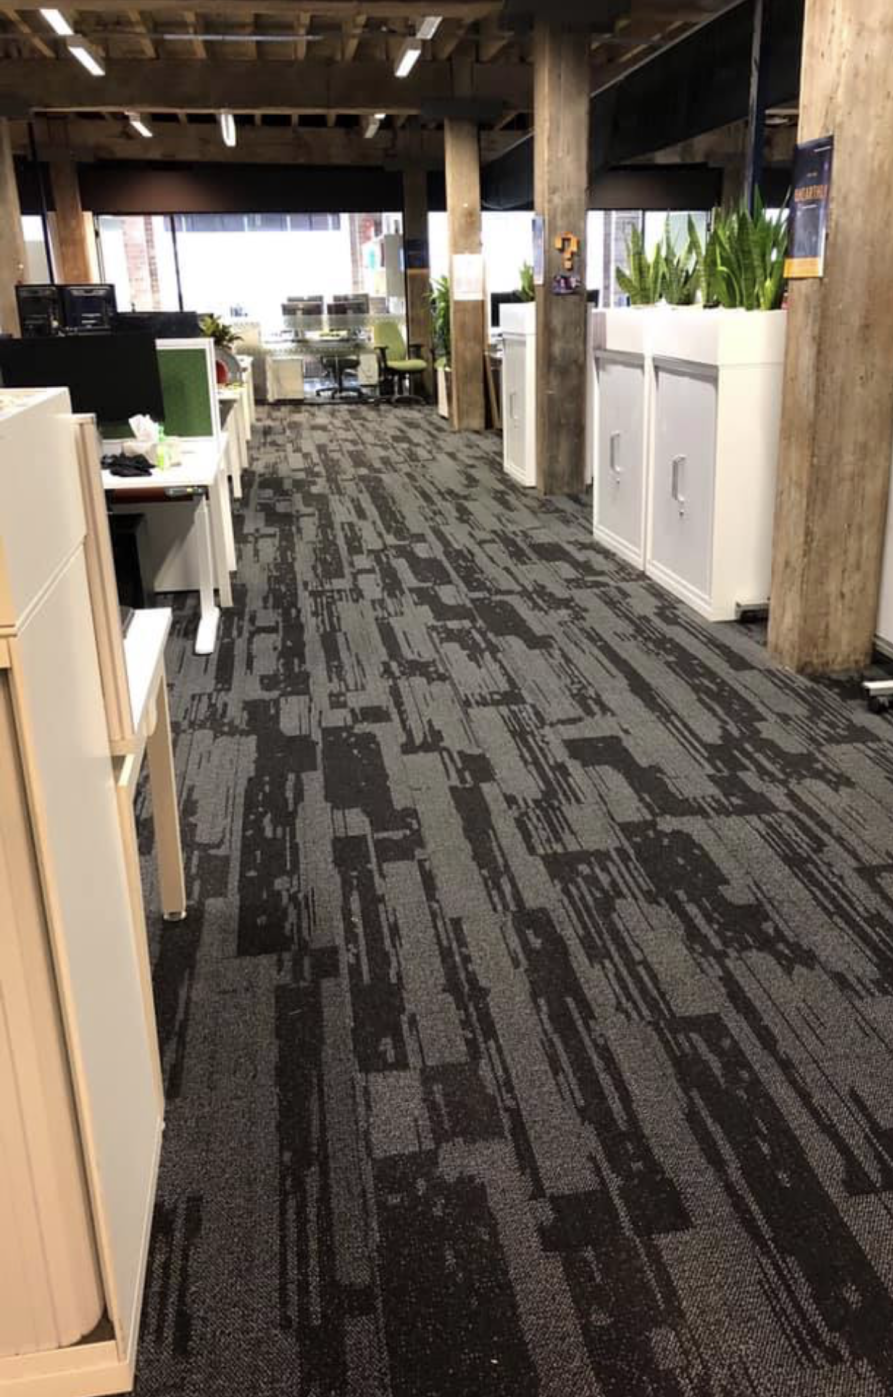 Urban Jet carpet in an office space, Perth Western Australia, Walkway view